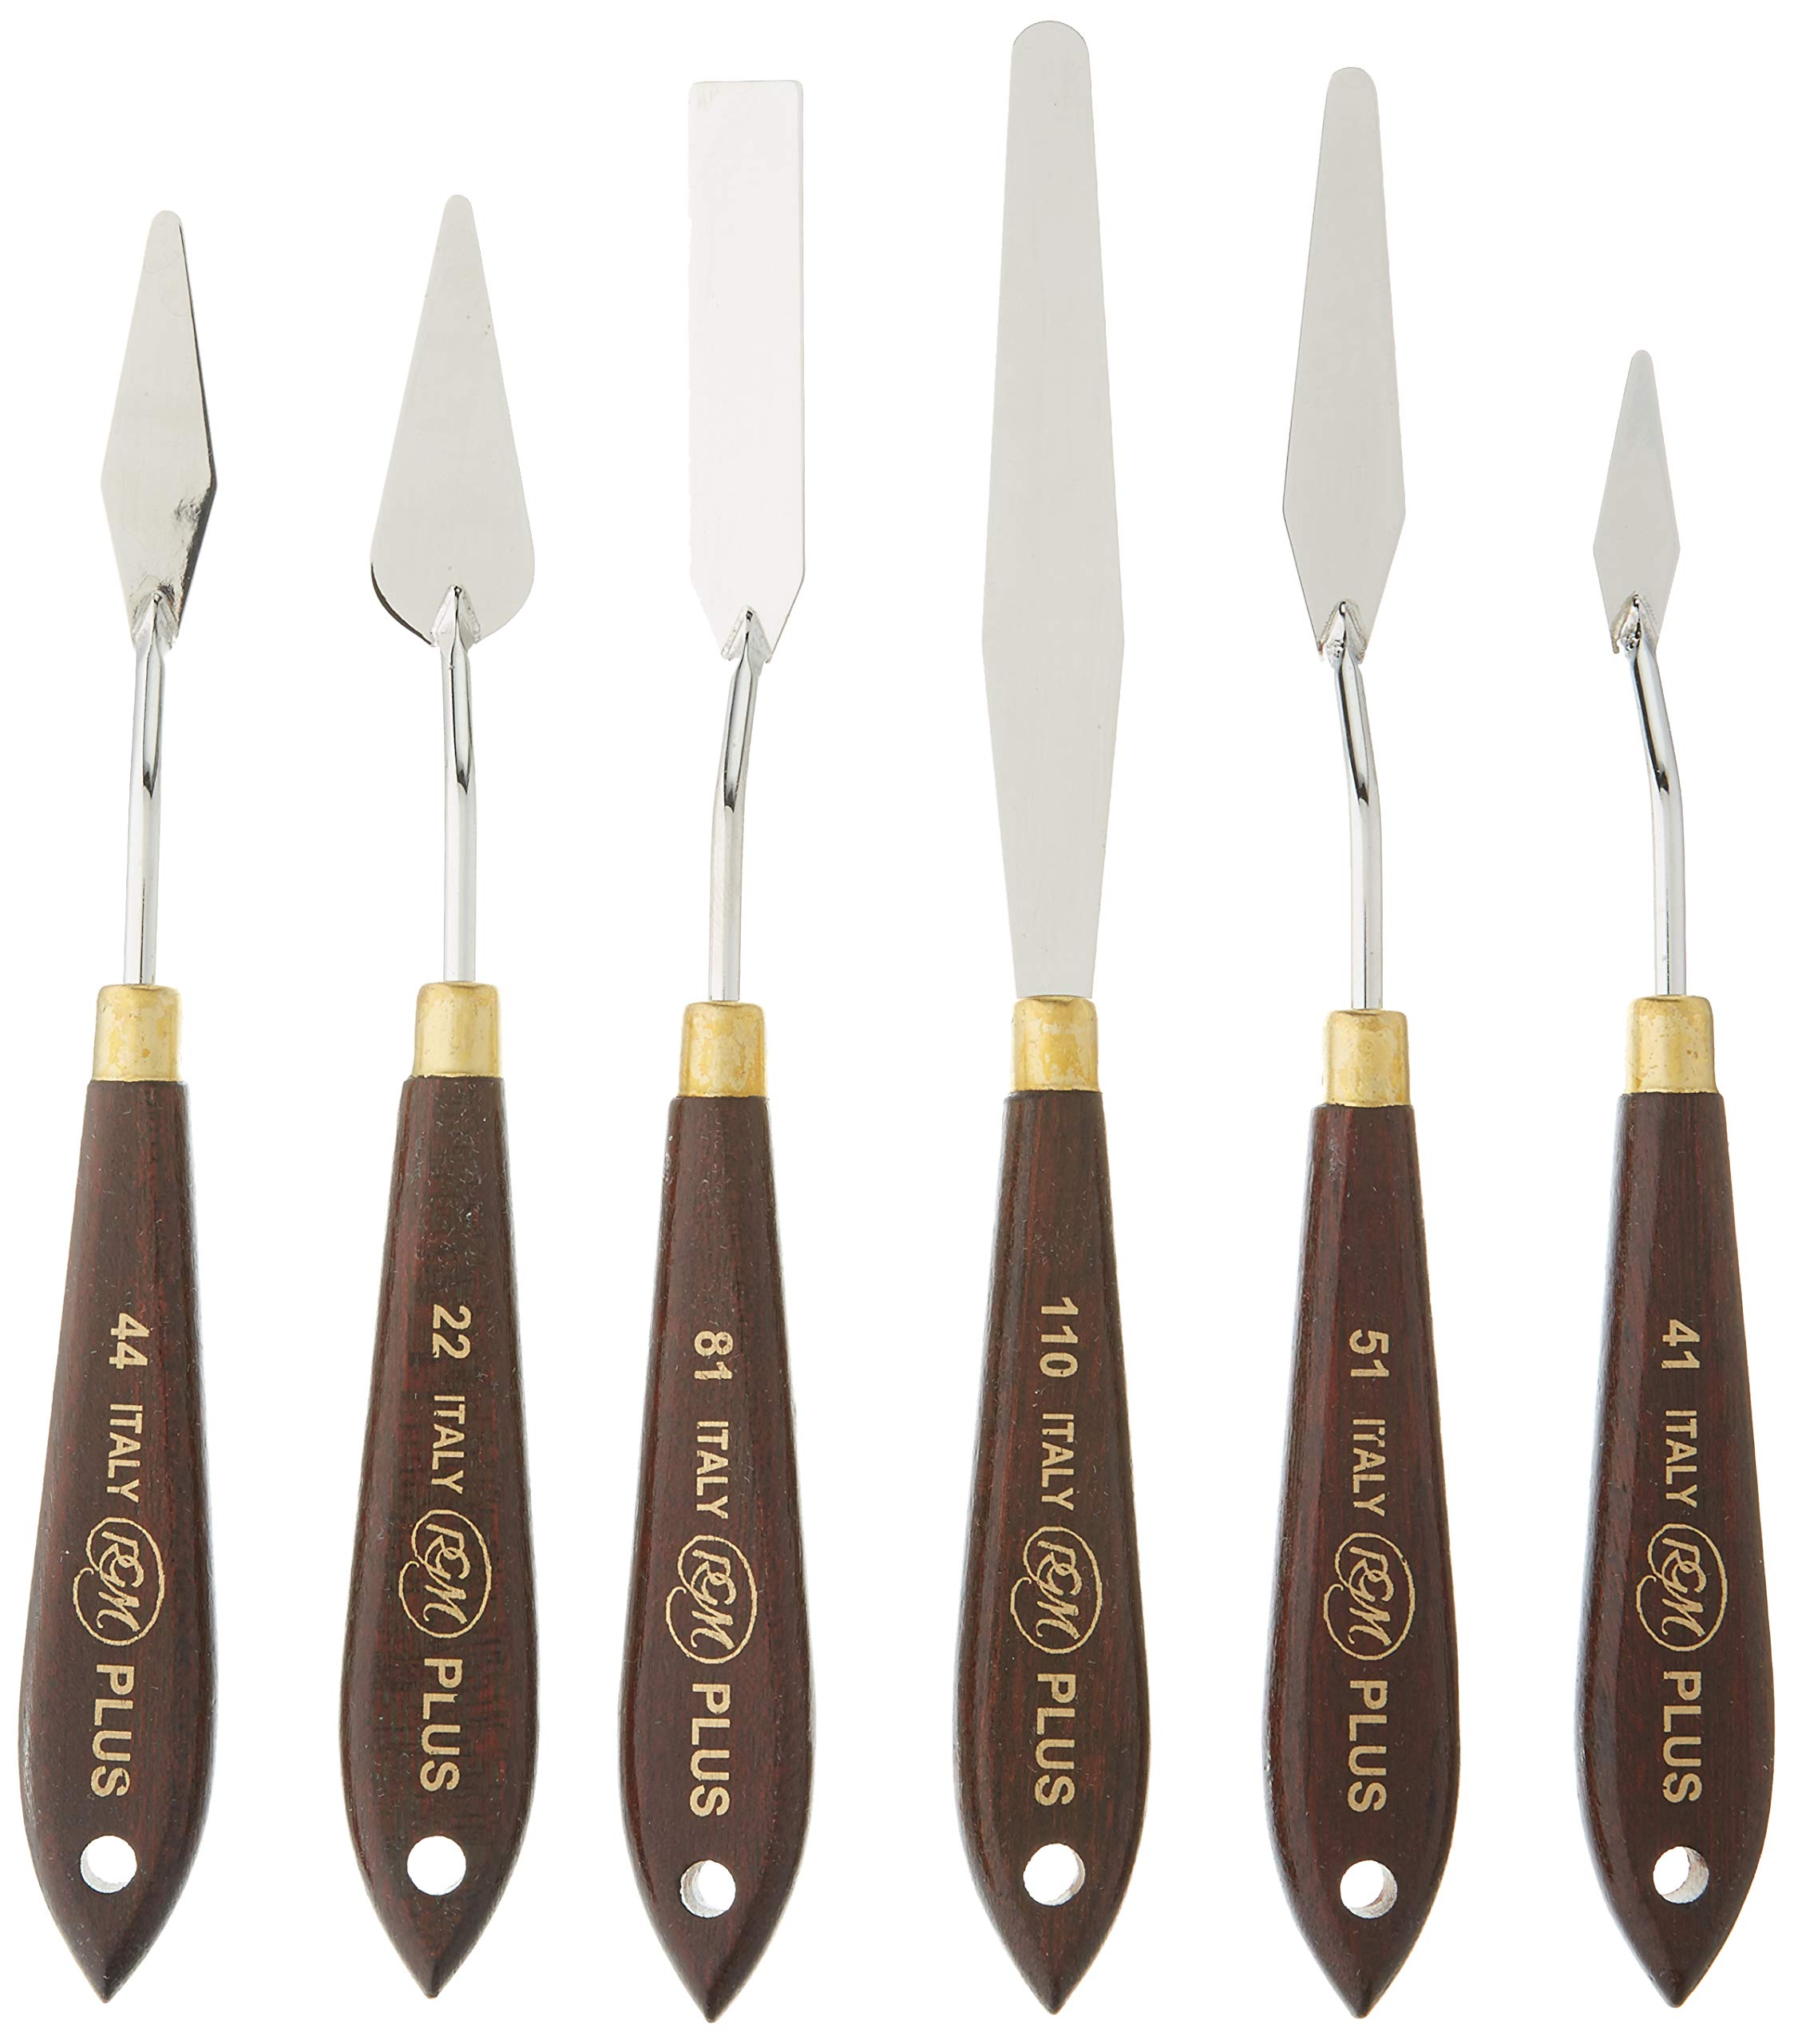 RGM Italian Plus Painting Knife Set (RGQSET31)